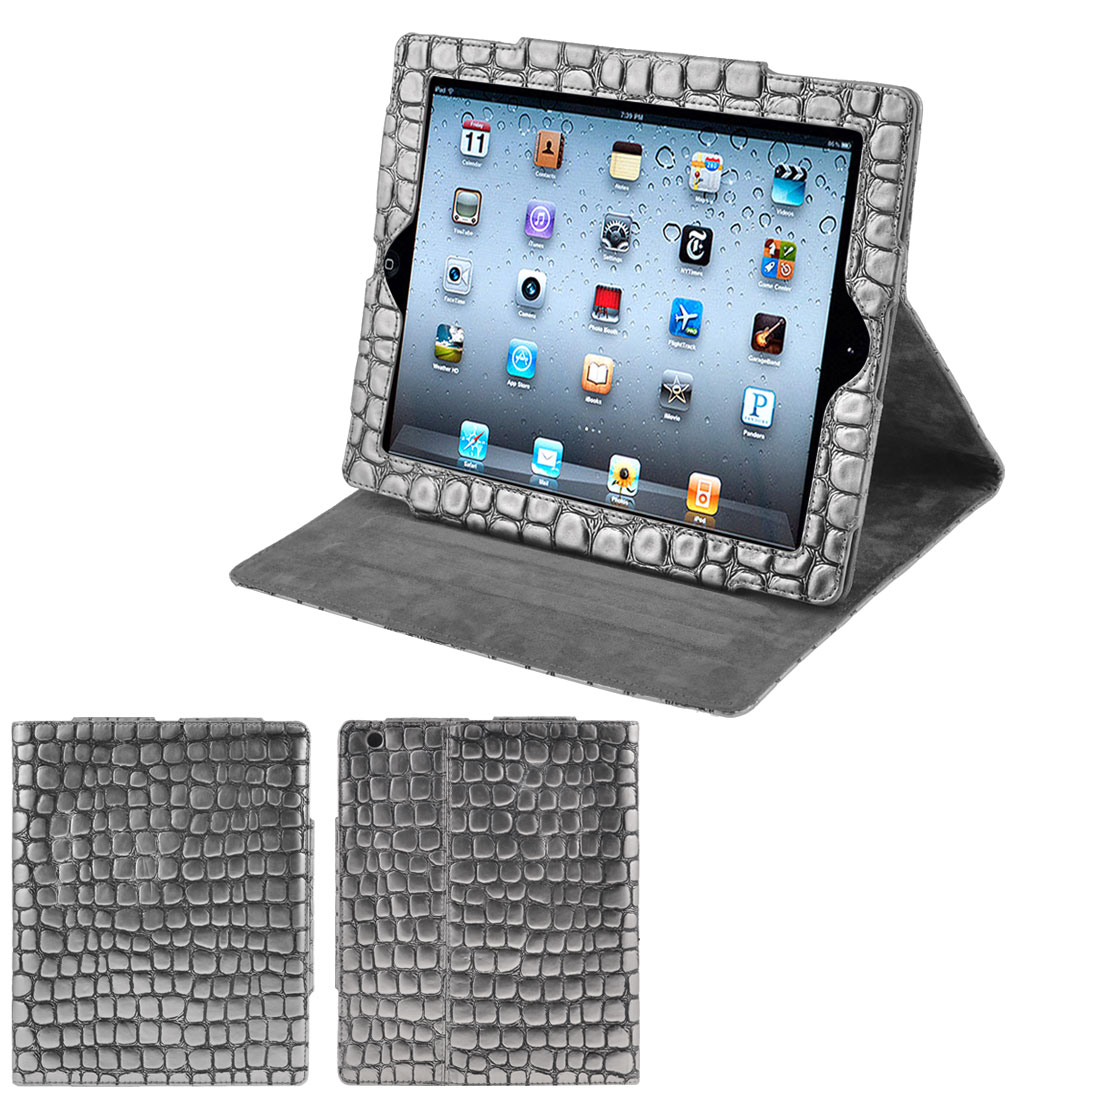 Gray Crocodile Pattern Faux Leather Tablet Stand Case Folio Cover for iPad 2